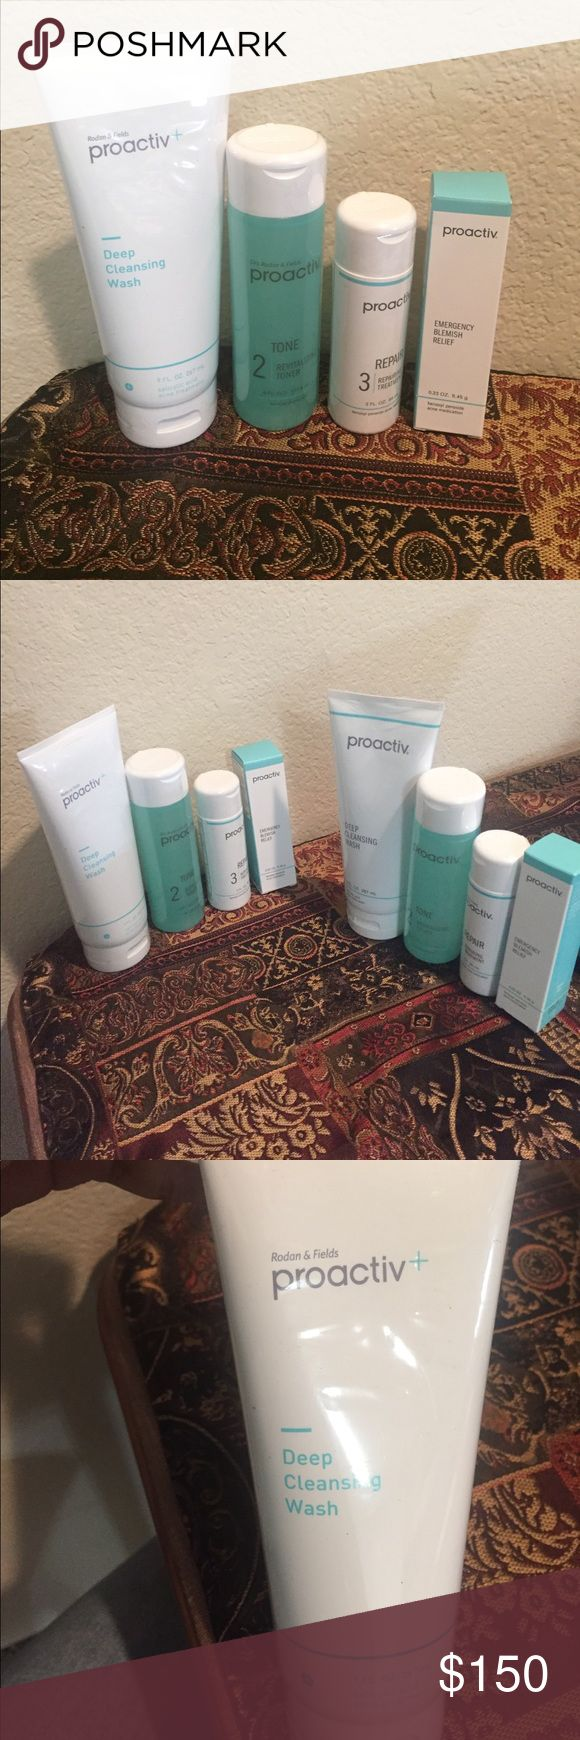 Proactiv Acne treatment - UNOPENED 2 sets of Proactiv Acne treatment kit products that are unopened  Each set has 1) Deep Cleansing Wash, 267ml 2) Revitalizing Toner, 177.4ml 3) Repairing Treatment Moisturizer, 89ml 4) Emergency Blemish Relief, 9.45g  This set is extremely effective to control Acne and has helped my skin a lot. I am selling these 2 sets as I have to move and don't want to carry it with me. Set 1 expiry - Nov2018 Set2 expiry - May2019 I am willing to sell individual products…